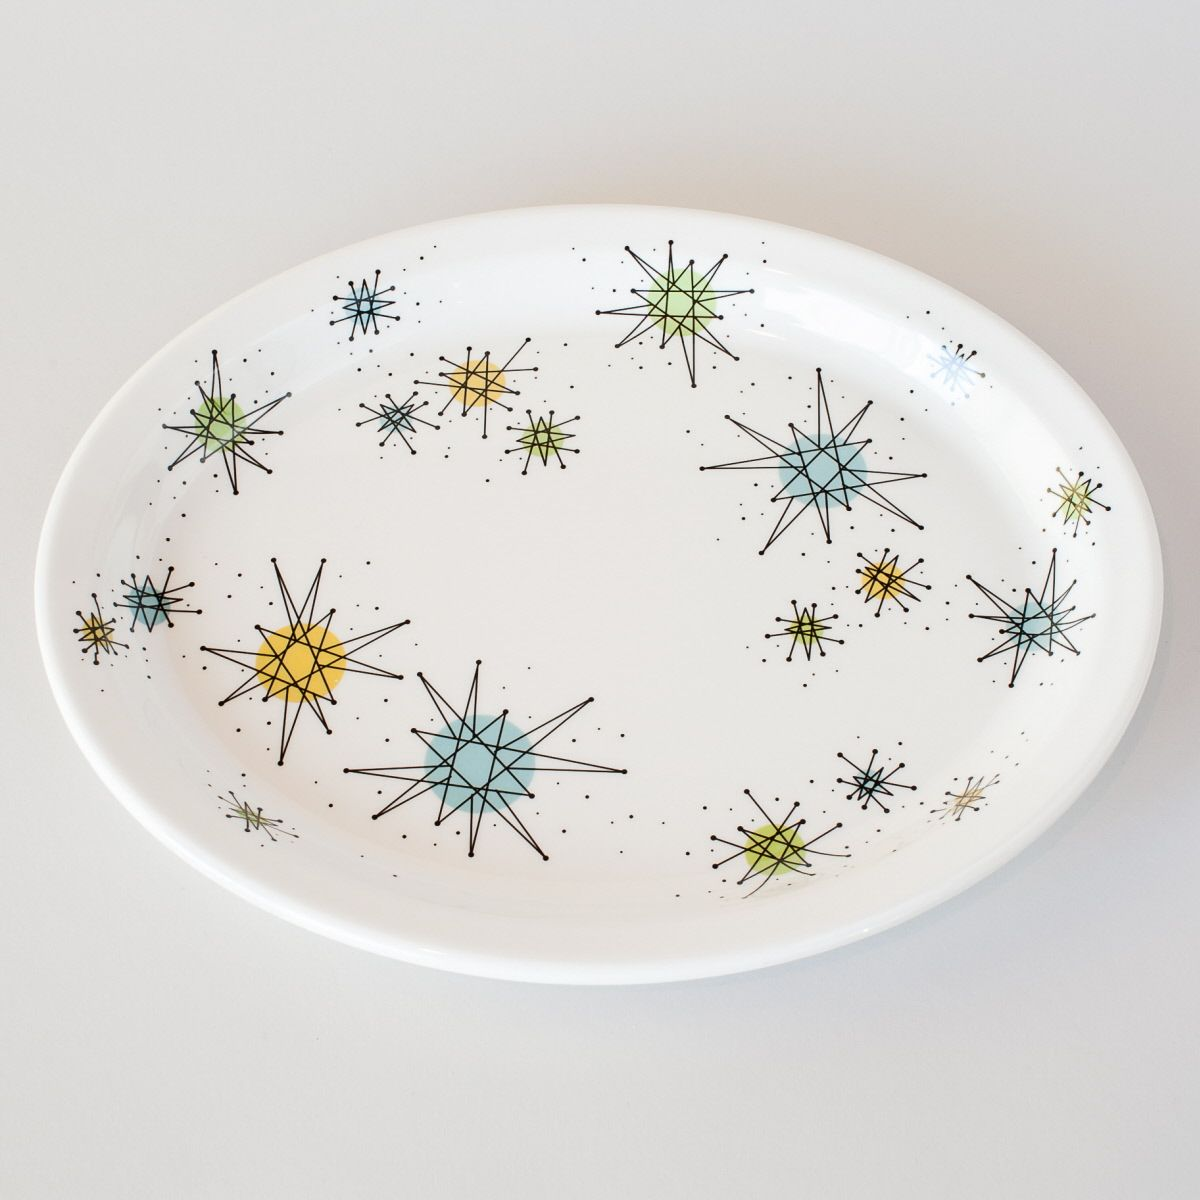 The Atomic Starburst Oval Dinner Plate adds 50s style to your retro kitchen. This reproduction Franciscan-style Sputnik plate is made of melamine. 11.5 & The Atomic Starburst Oval Dinner Plate adds 50s style to your retro ...